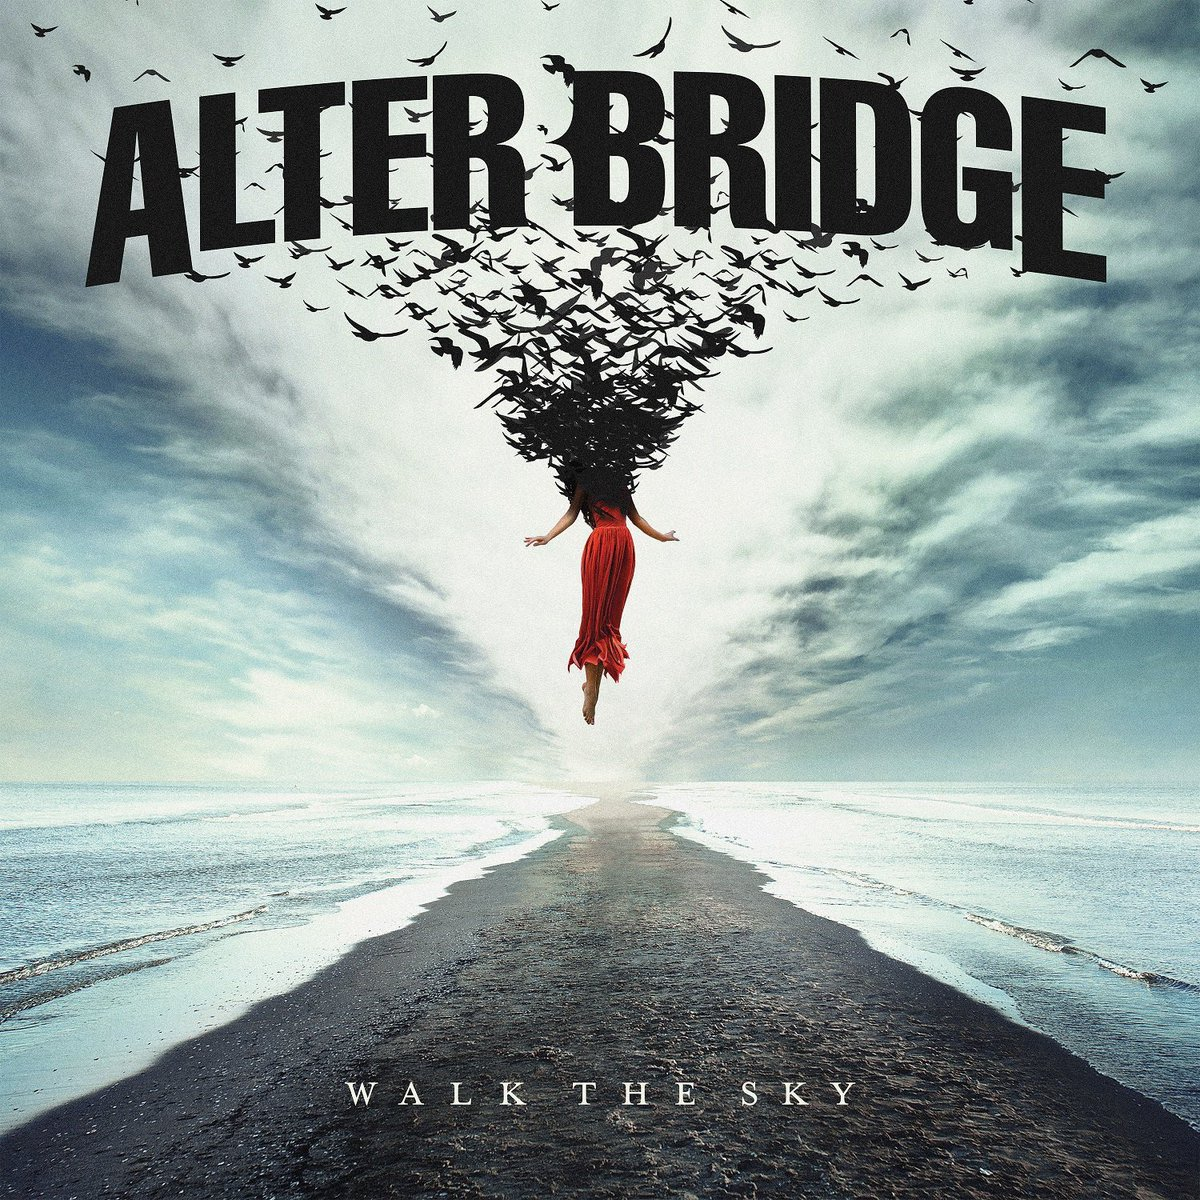 @AlterBridge Walk The Sky Oct. 18, 2019  1. One Life 2. Wouldn't You Rather 3. In The Deep 4. Godspeed 5. Native Son 6. Take The Crown 7. Indoctrination 8. The Bitter End 9. Pay No Mind 10. Forever Falling 11. Clear Horizon 12. Walking On The Sky 13. Tear Us Apart 14. Dying Light